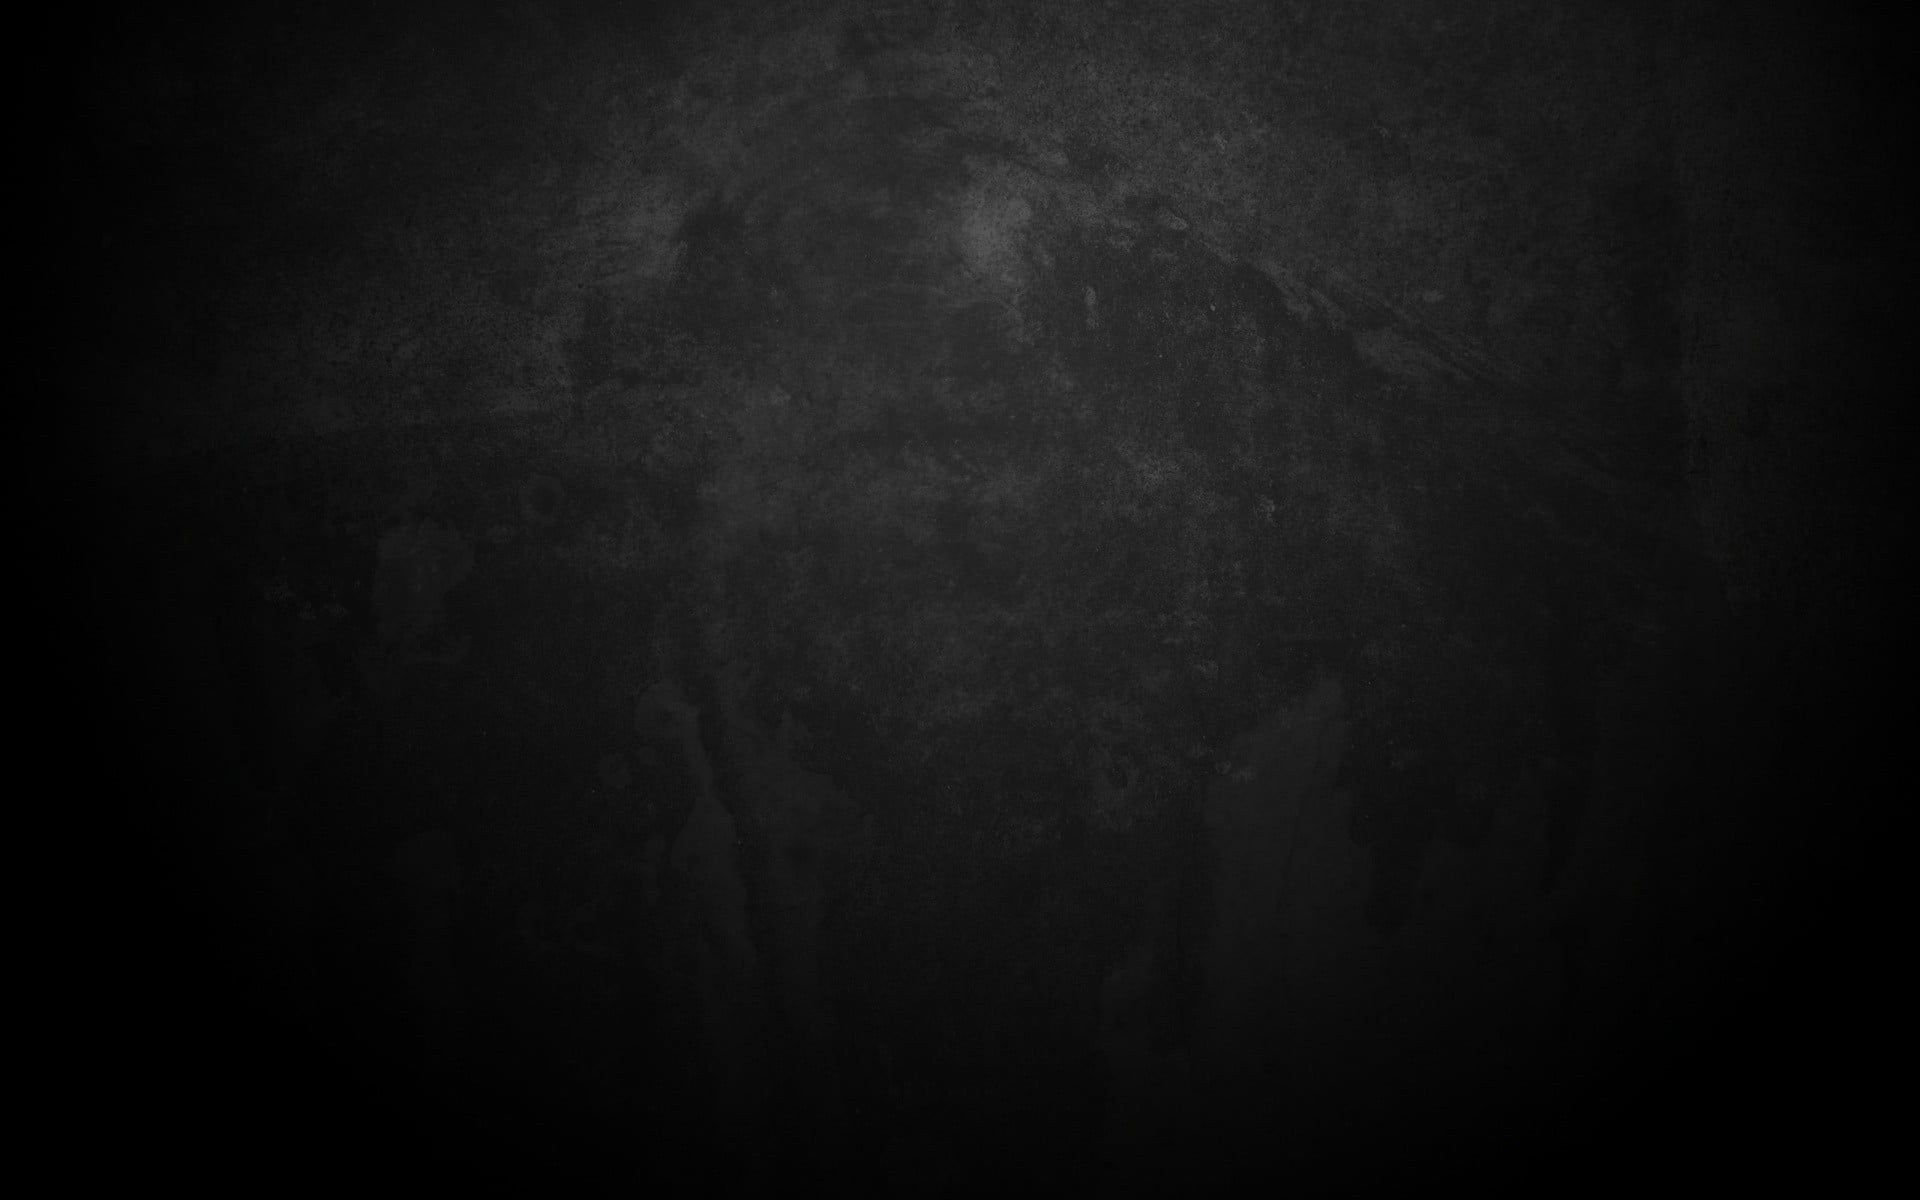 Texture Simple Dark Simple Background Black Background Grunge 1080p Wallpaper Hdwallp Dark Desktop Backgrounds Black Background Wallpaper Dark Wallpaper